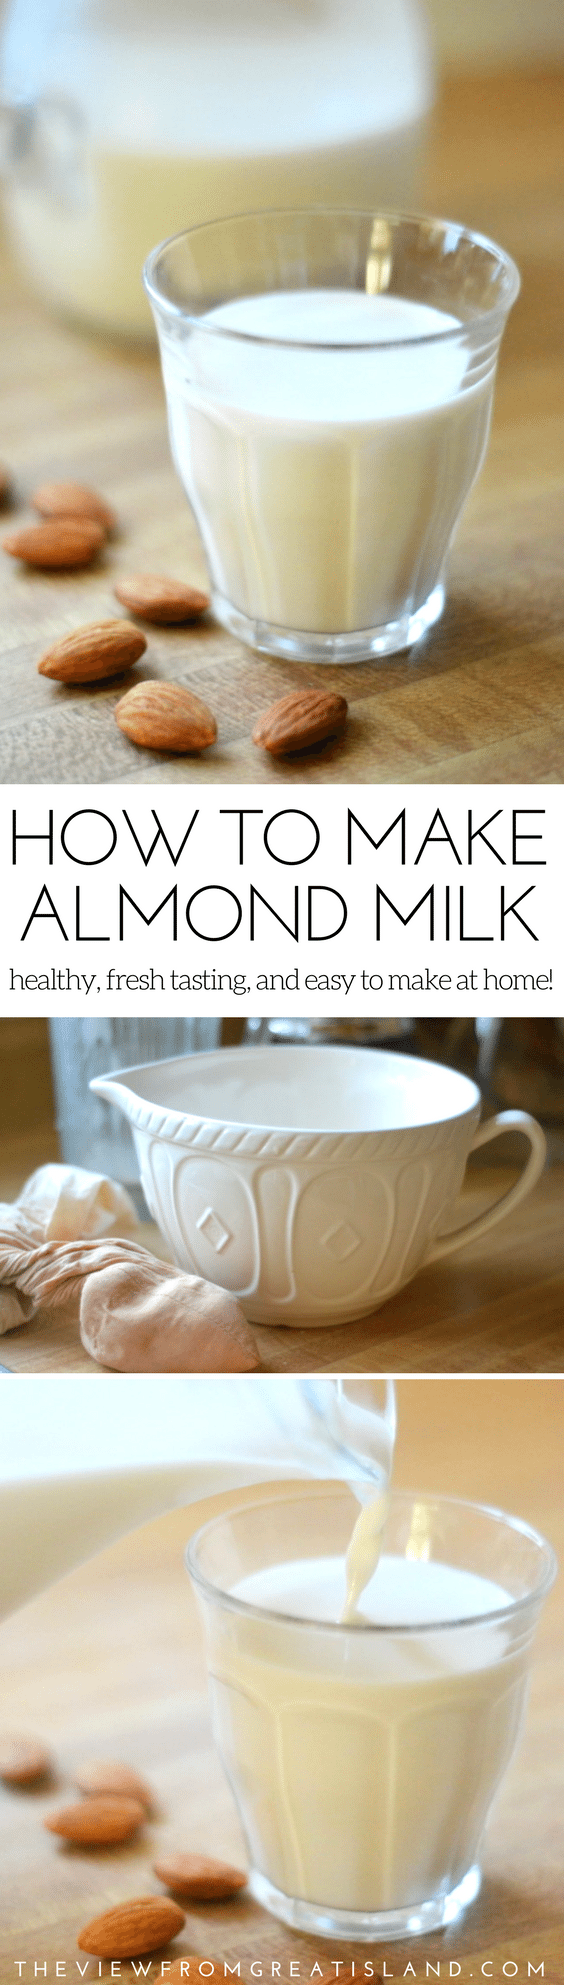 How to Make Almond Milk ~ this is a game changer, I promise! This non-dairy almond milk recipe is healthy, fresh tasting, and easy to make at home! #nondairy #milk #nutmilk #almondmilk #almonds #healthybeverage #nondairymilk #lactoseintolerant #nuts